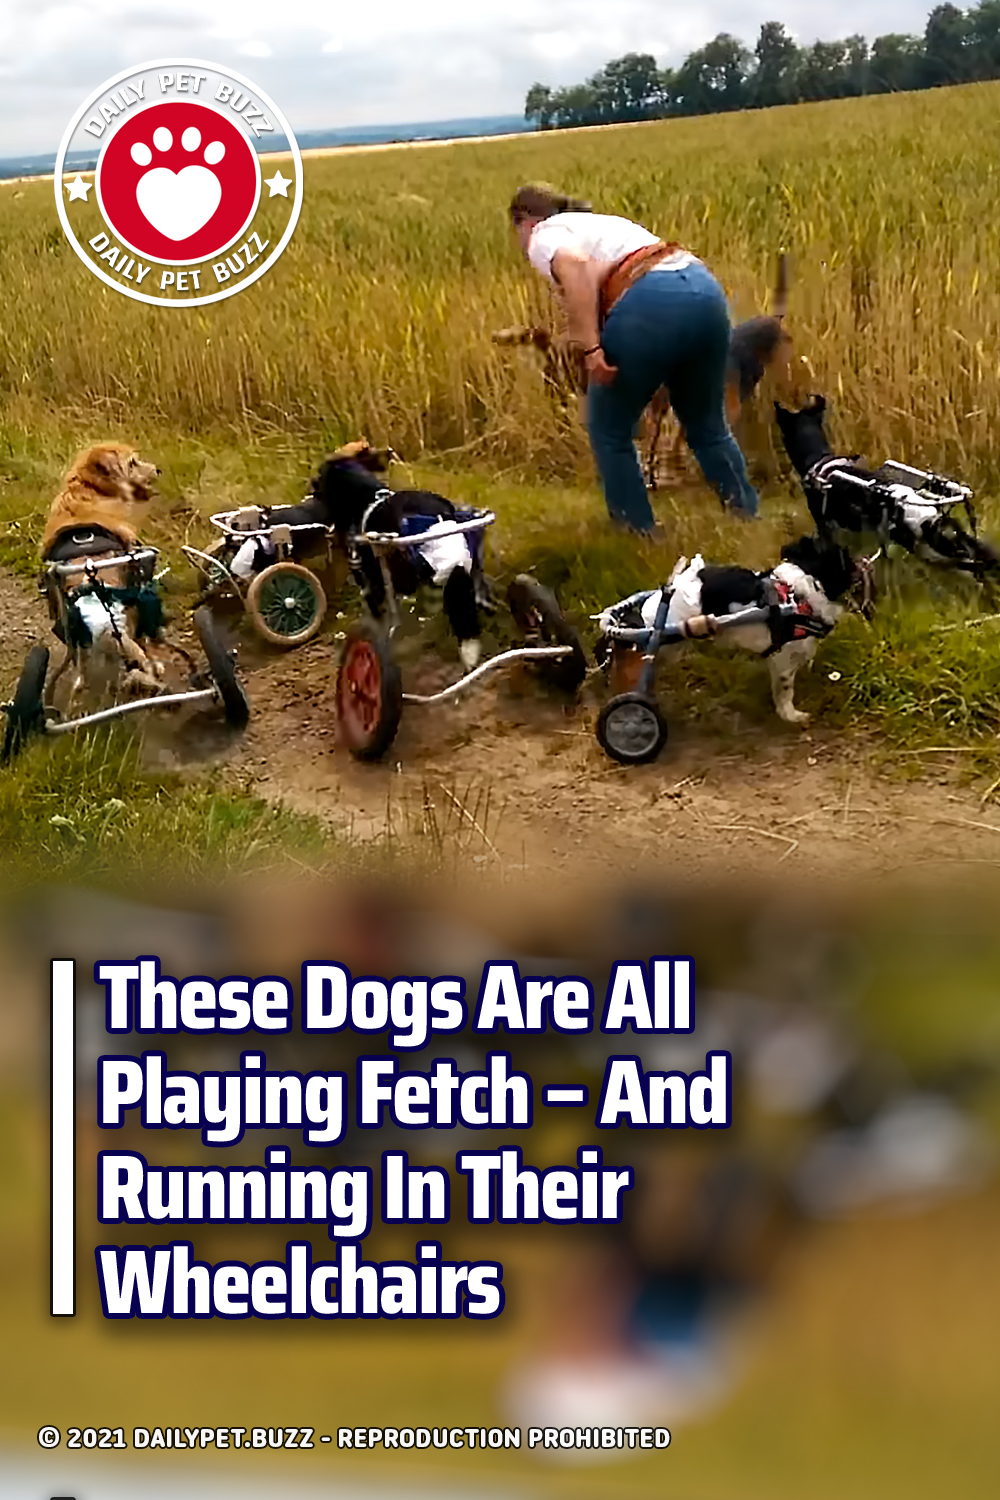 These Dogs Are All Playing Fetch – And Running In Their Wheelchairs